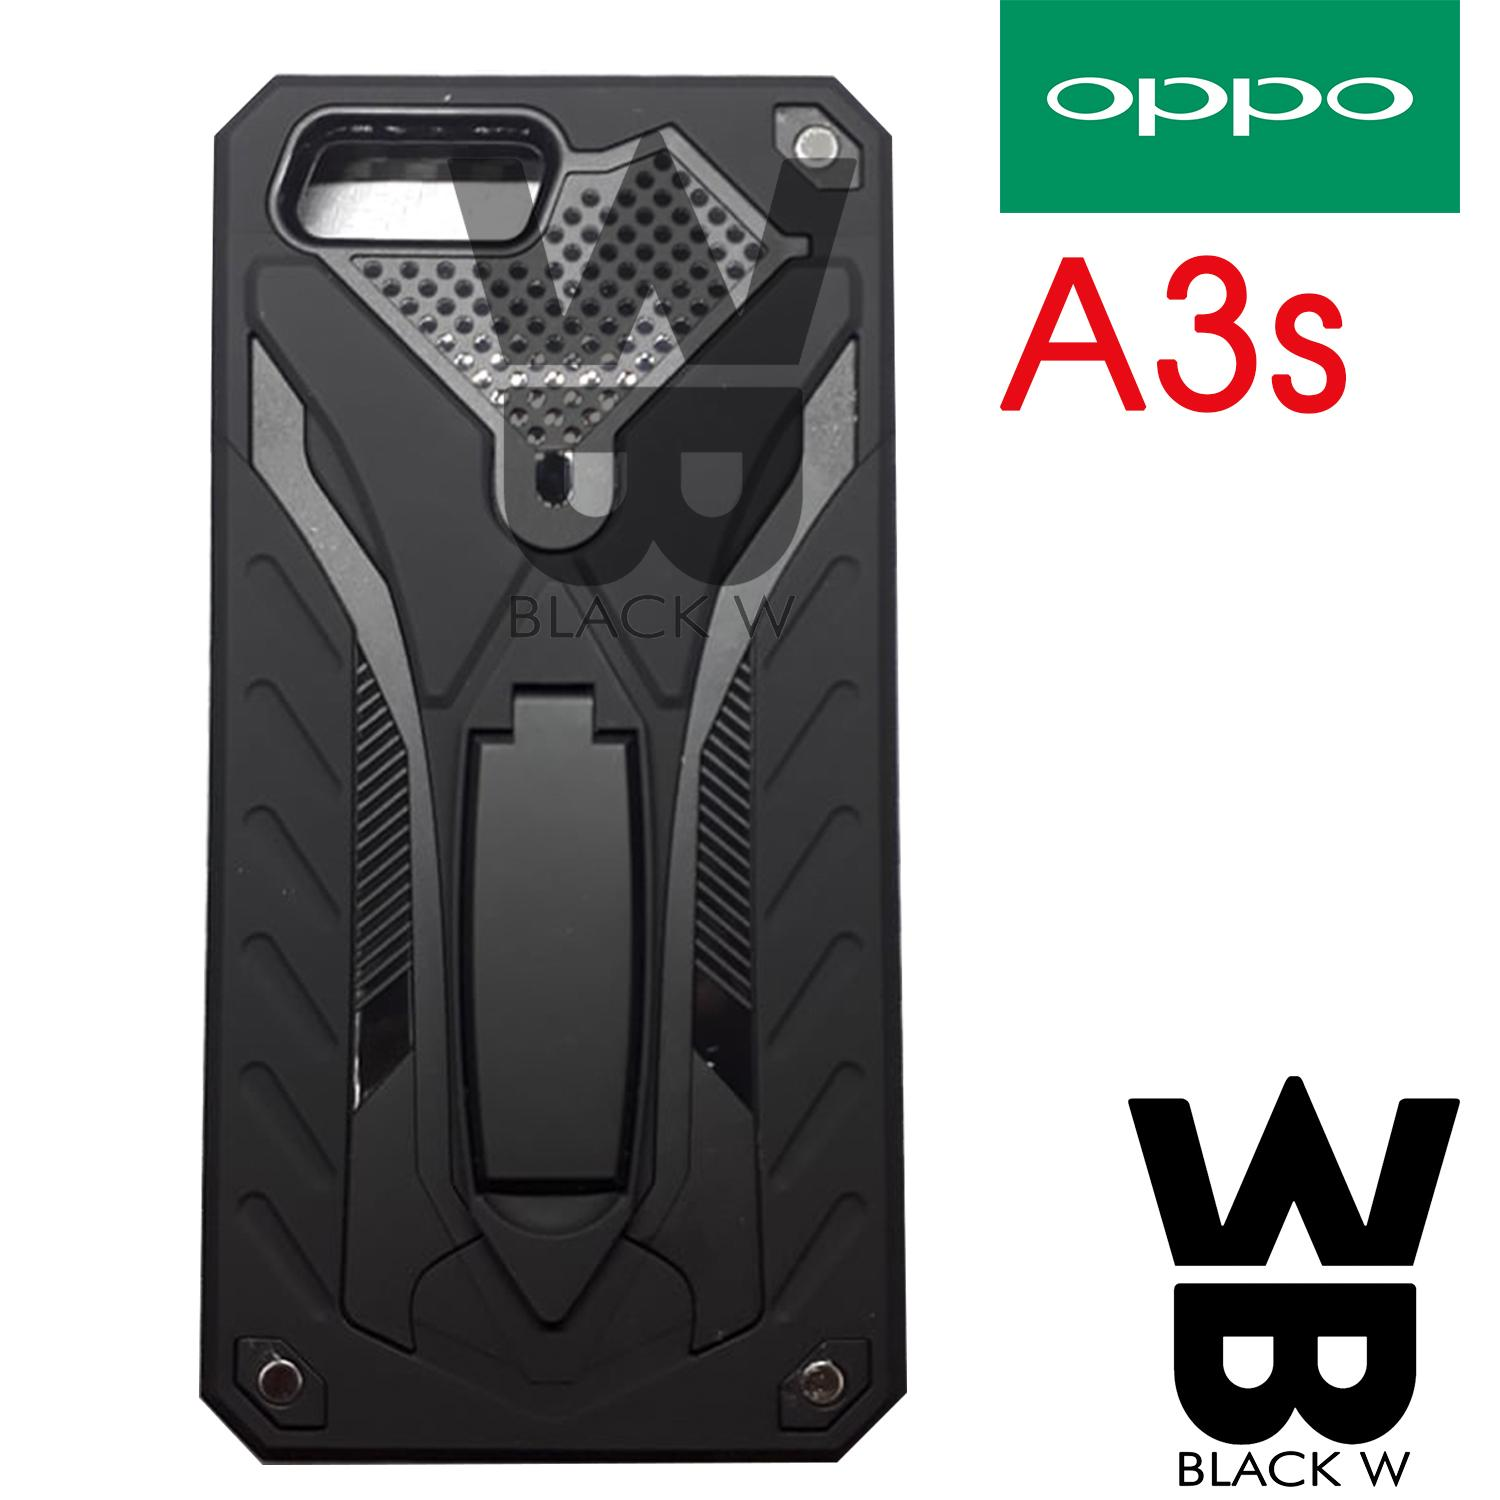 OPPO Philippines - OPPO Phone Accessories for sale - prices